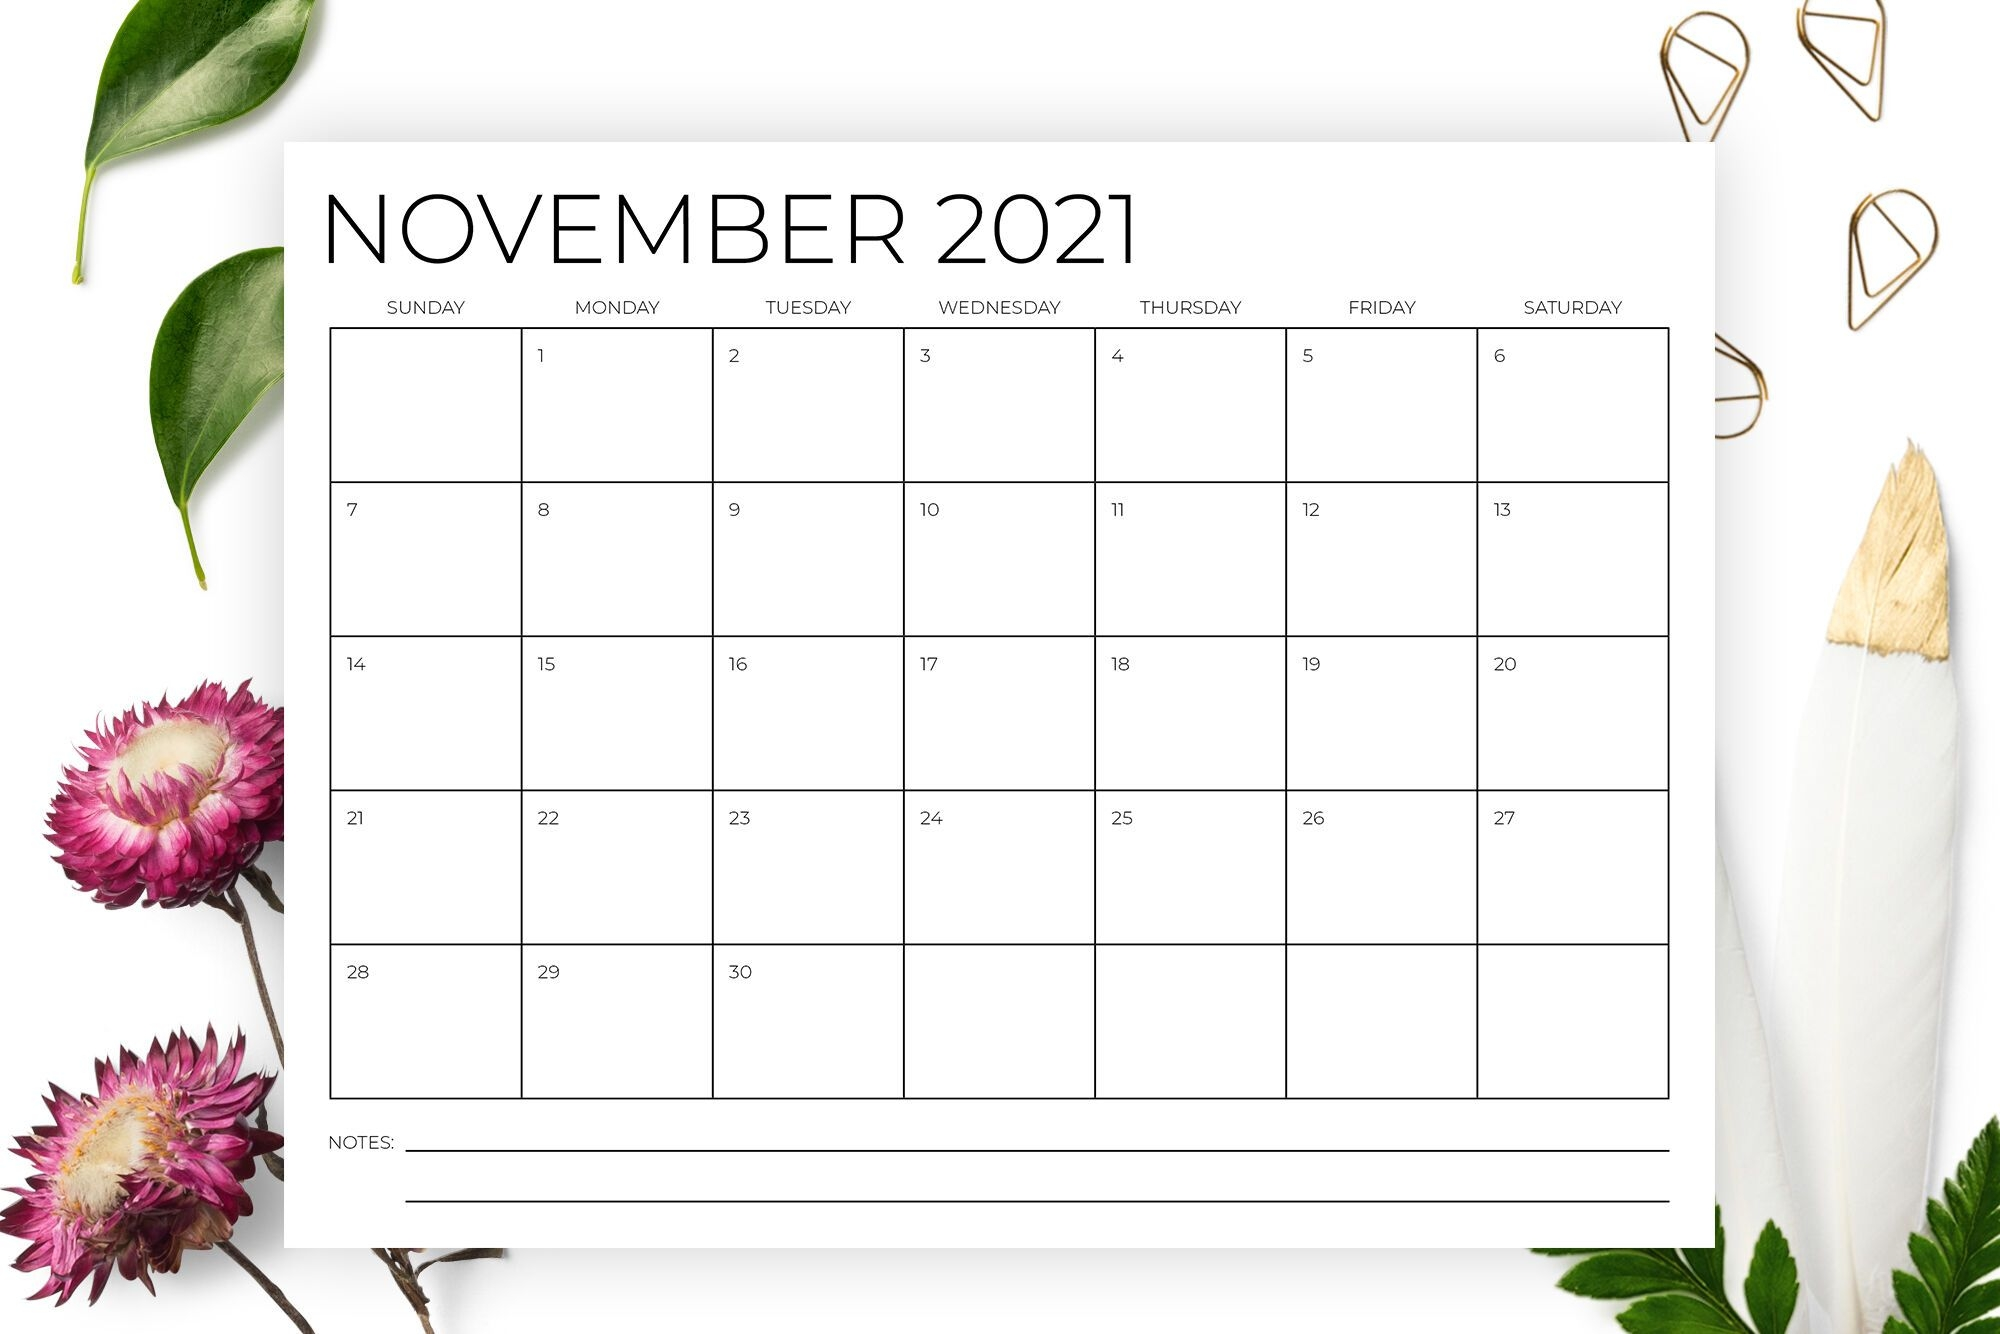 8 5 X 11 Inch Minimal 2021 Calendarrunning With Foxes